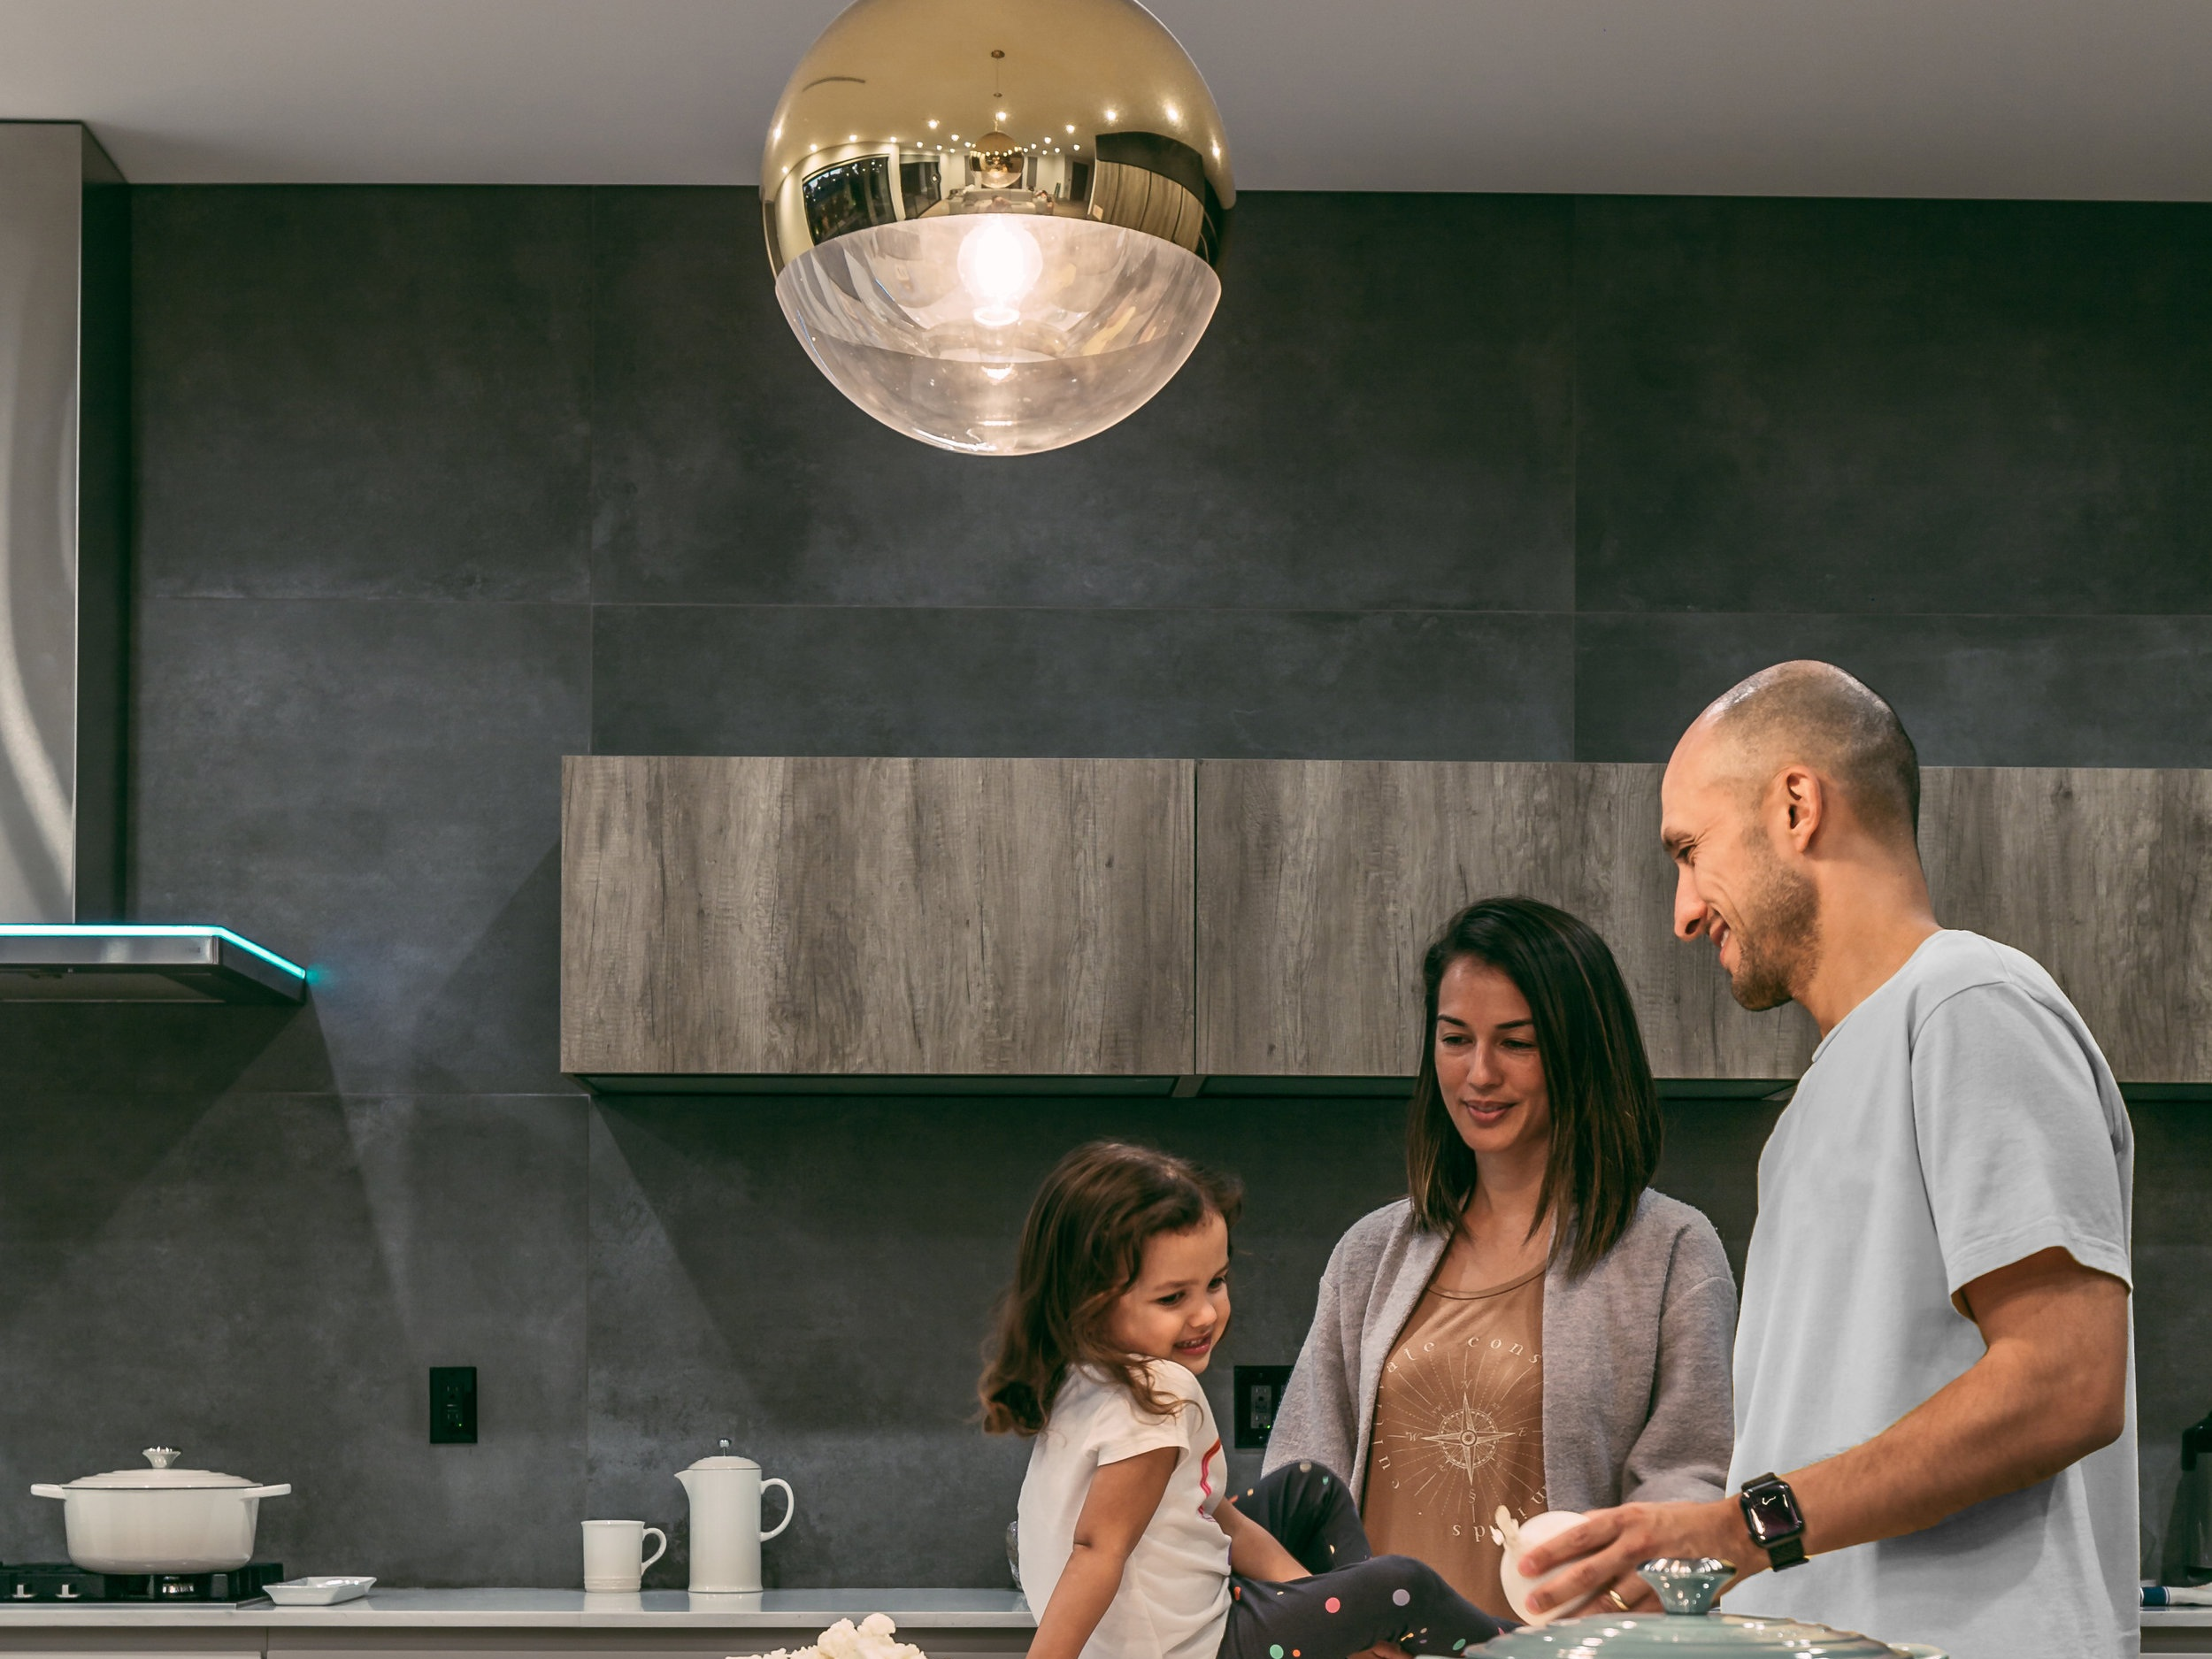 Family Size - There's a big difference between the needs and wants of a family of 2 vs. a family of 12. For example: if you're a real estate agent selling a two bedroom condo, you wouldn't want to waste money on large households.